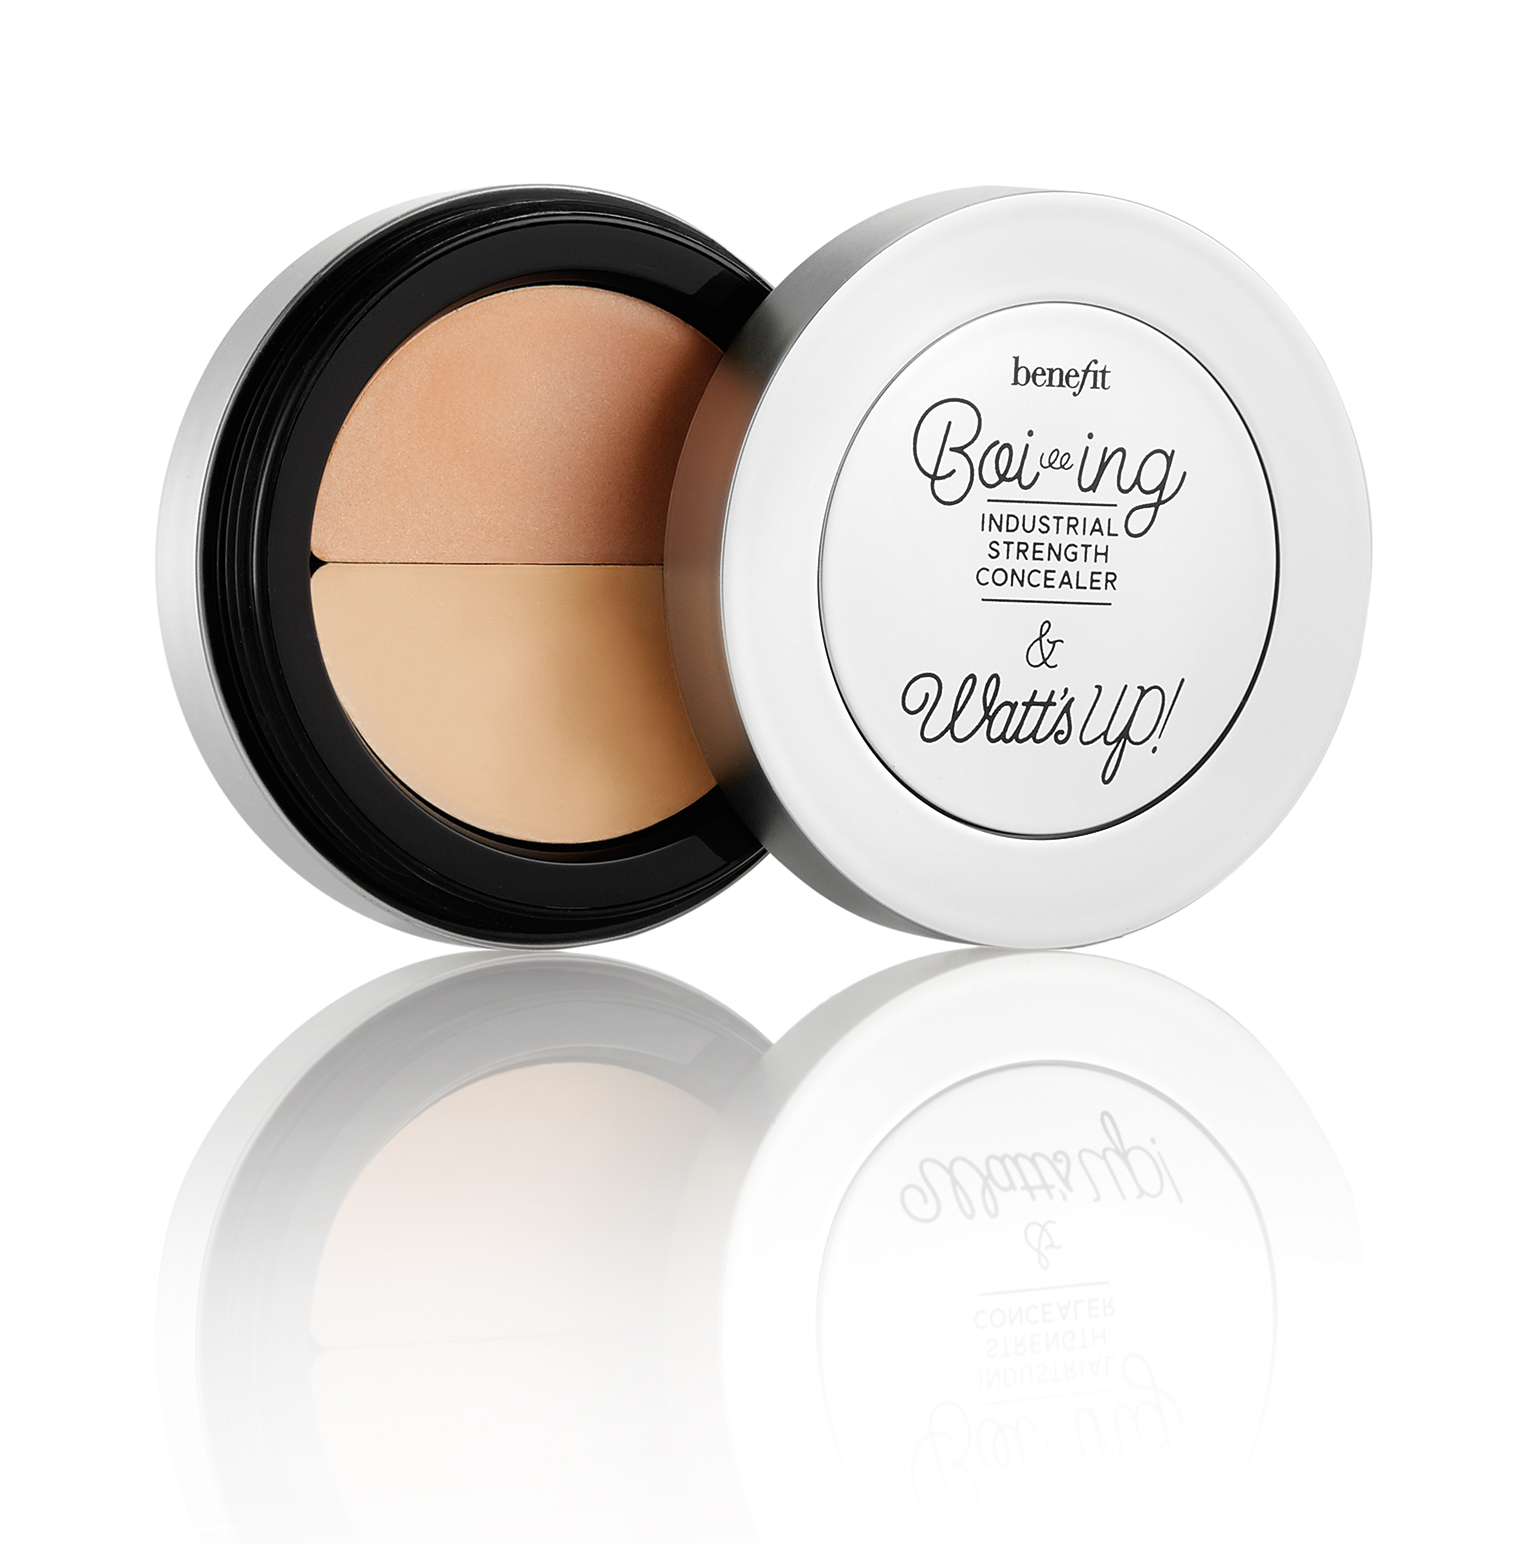 Benefit Cosmetics, one of the best multitasking beauty products